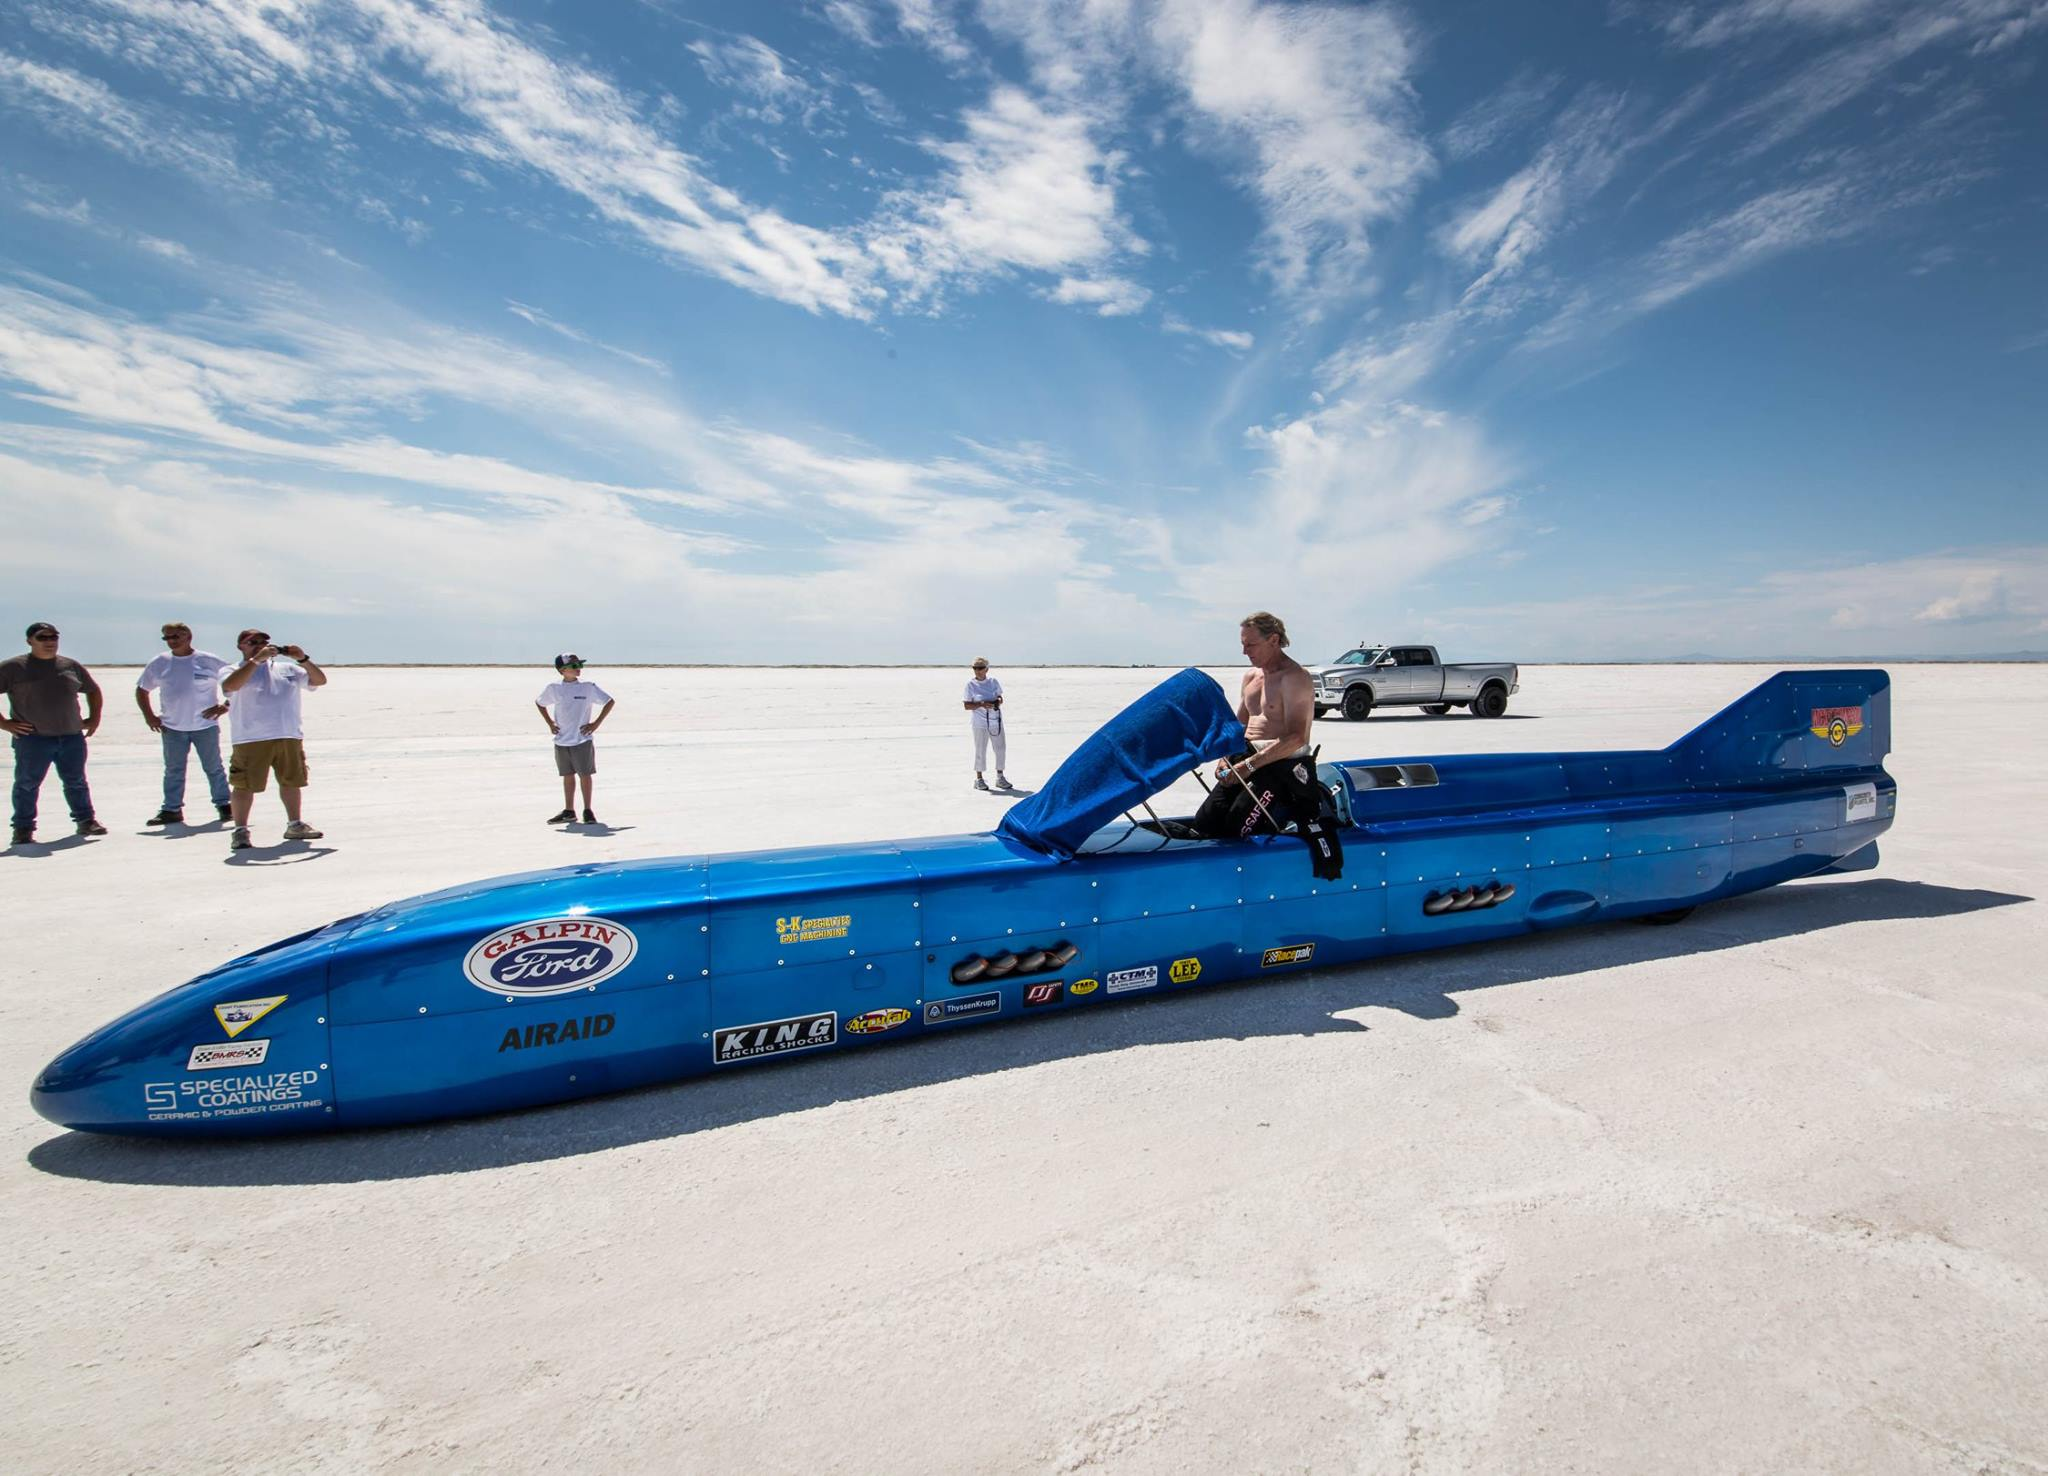 Danny Thompson Clocks 317mph Run In Challenger II During USFRA Test Session At Bonneville